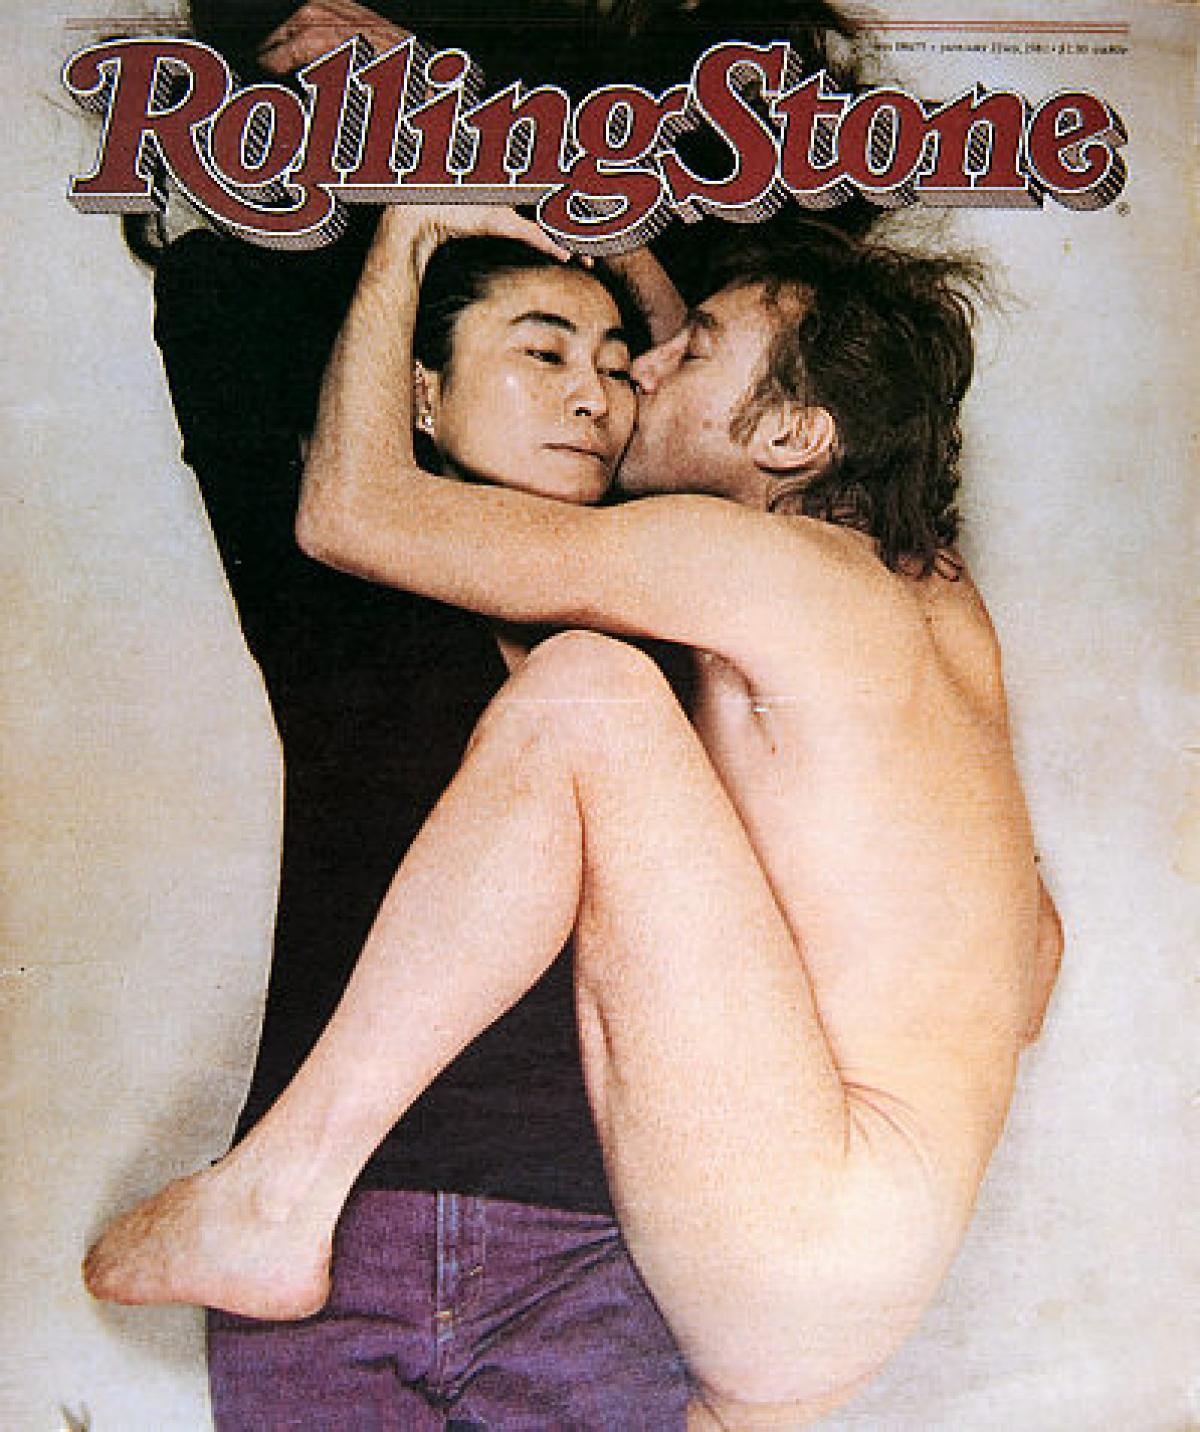 Photo de John Lennon et Yoko Ono / source : teliofashion.files.wordpress.com